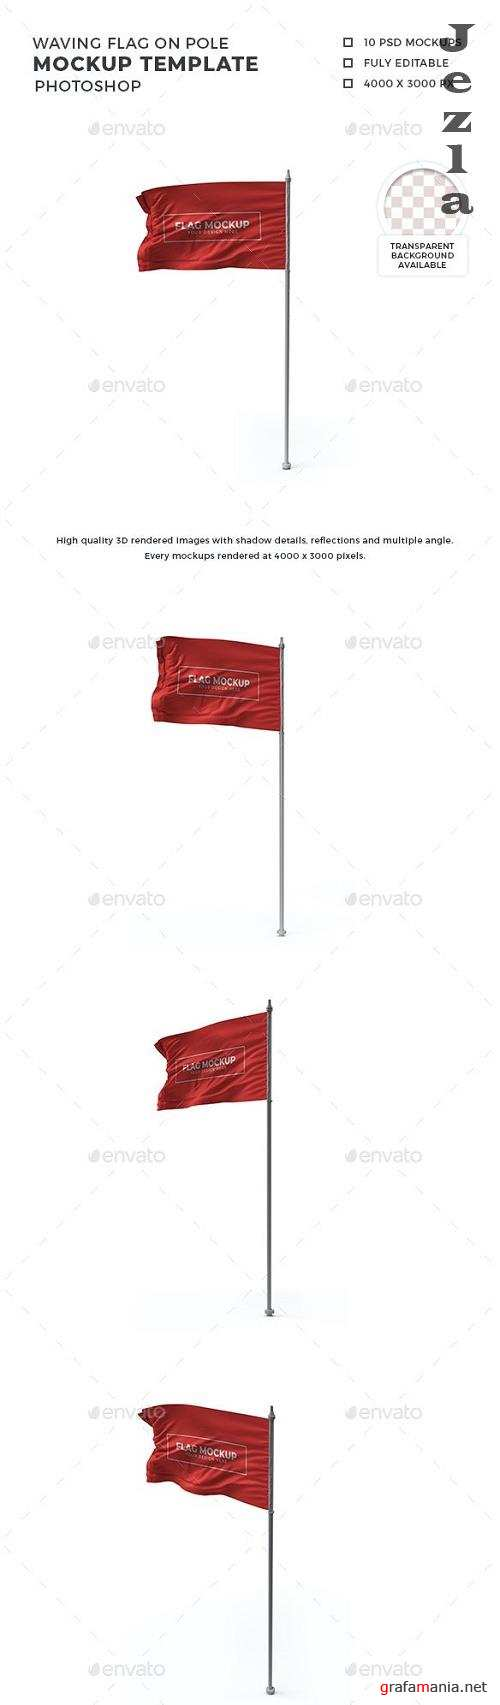 Waving Flag on Pole Mockup Template Set - 30873853